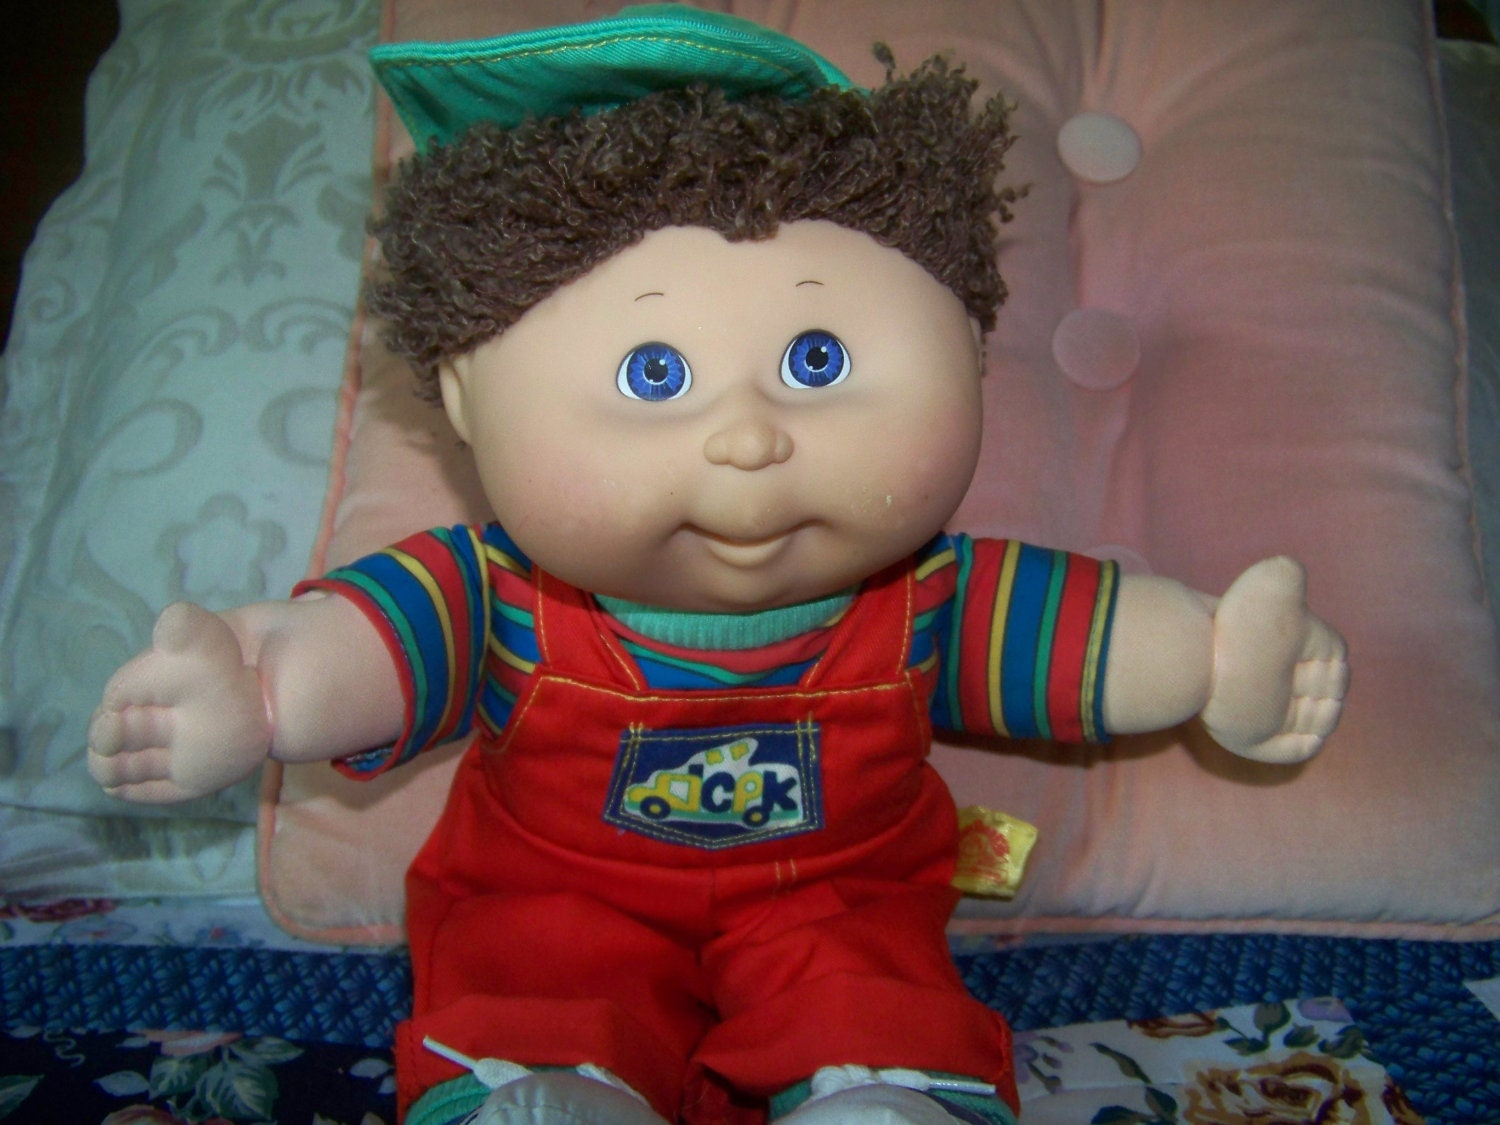 Cabbage Patch Boy Doll Baseball Cap And Overalls Vintage